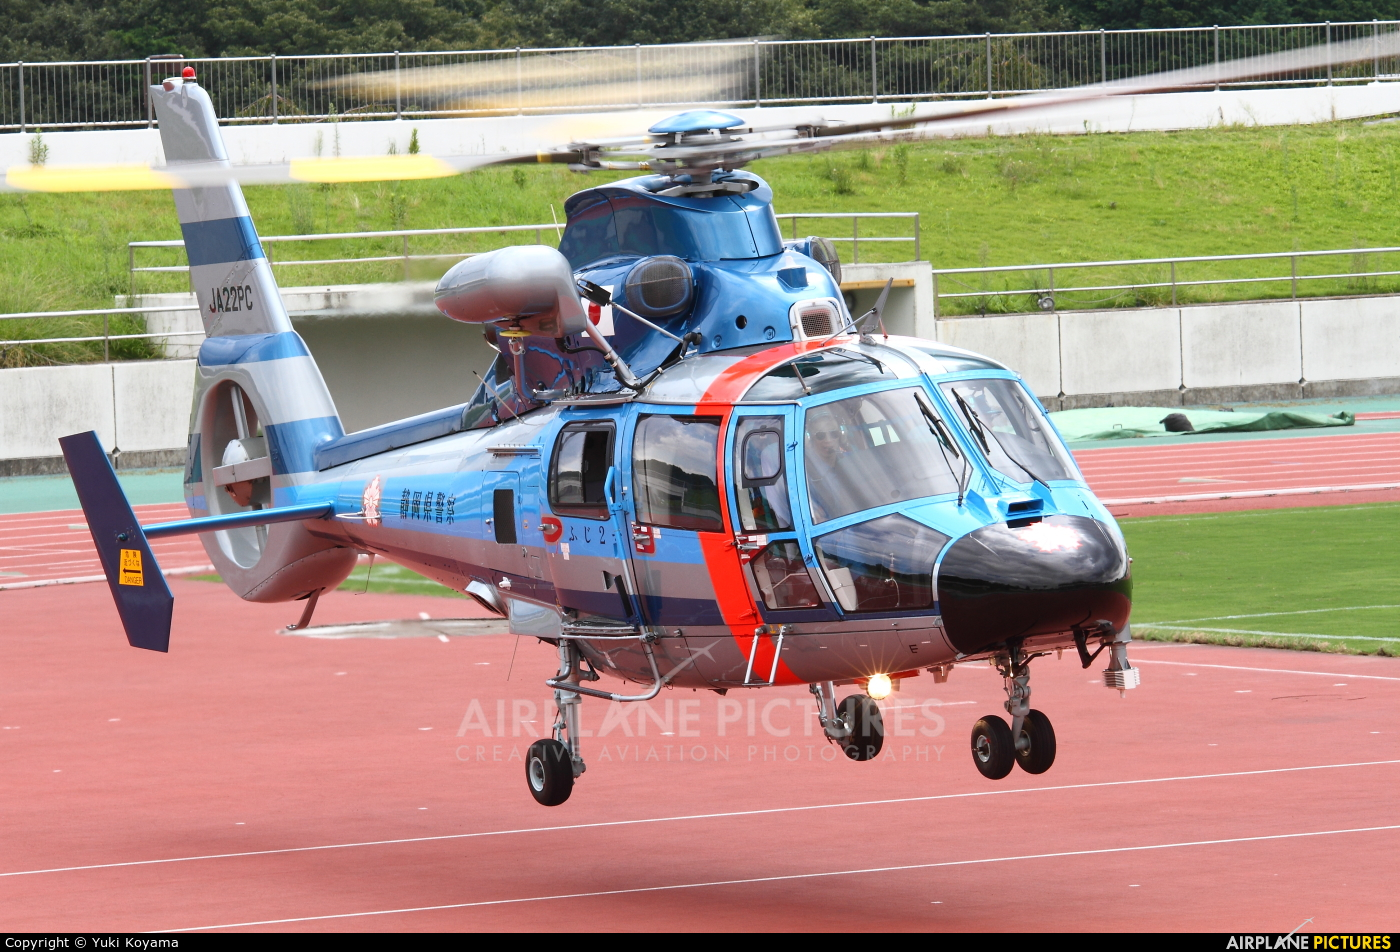 Japan - Police JA22PC aircraft at Off Airport - Japan